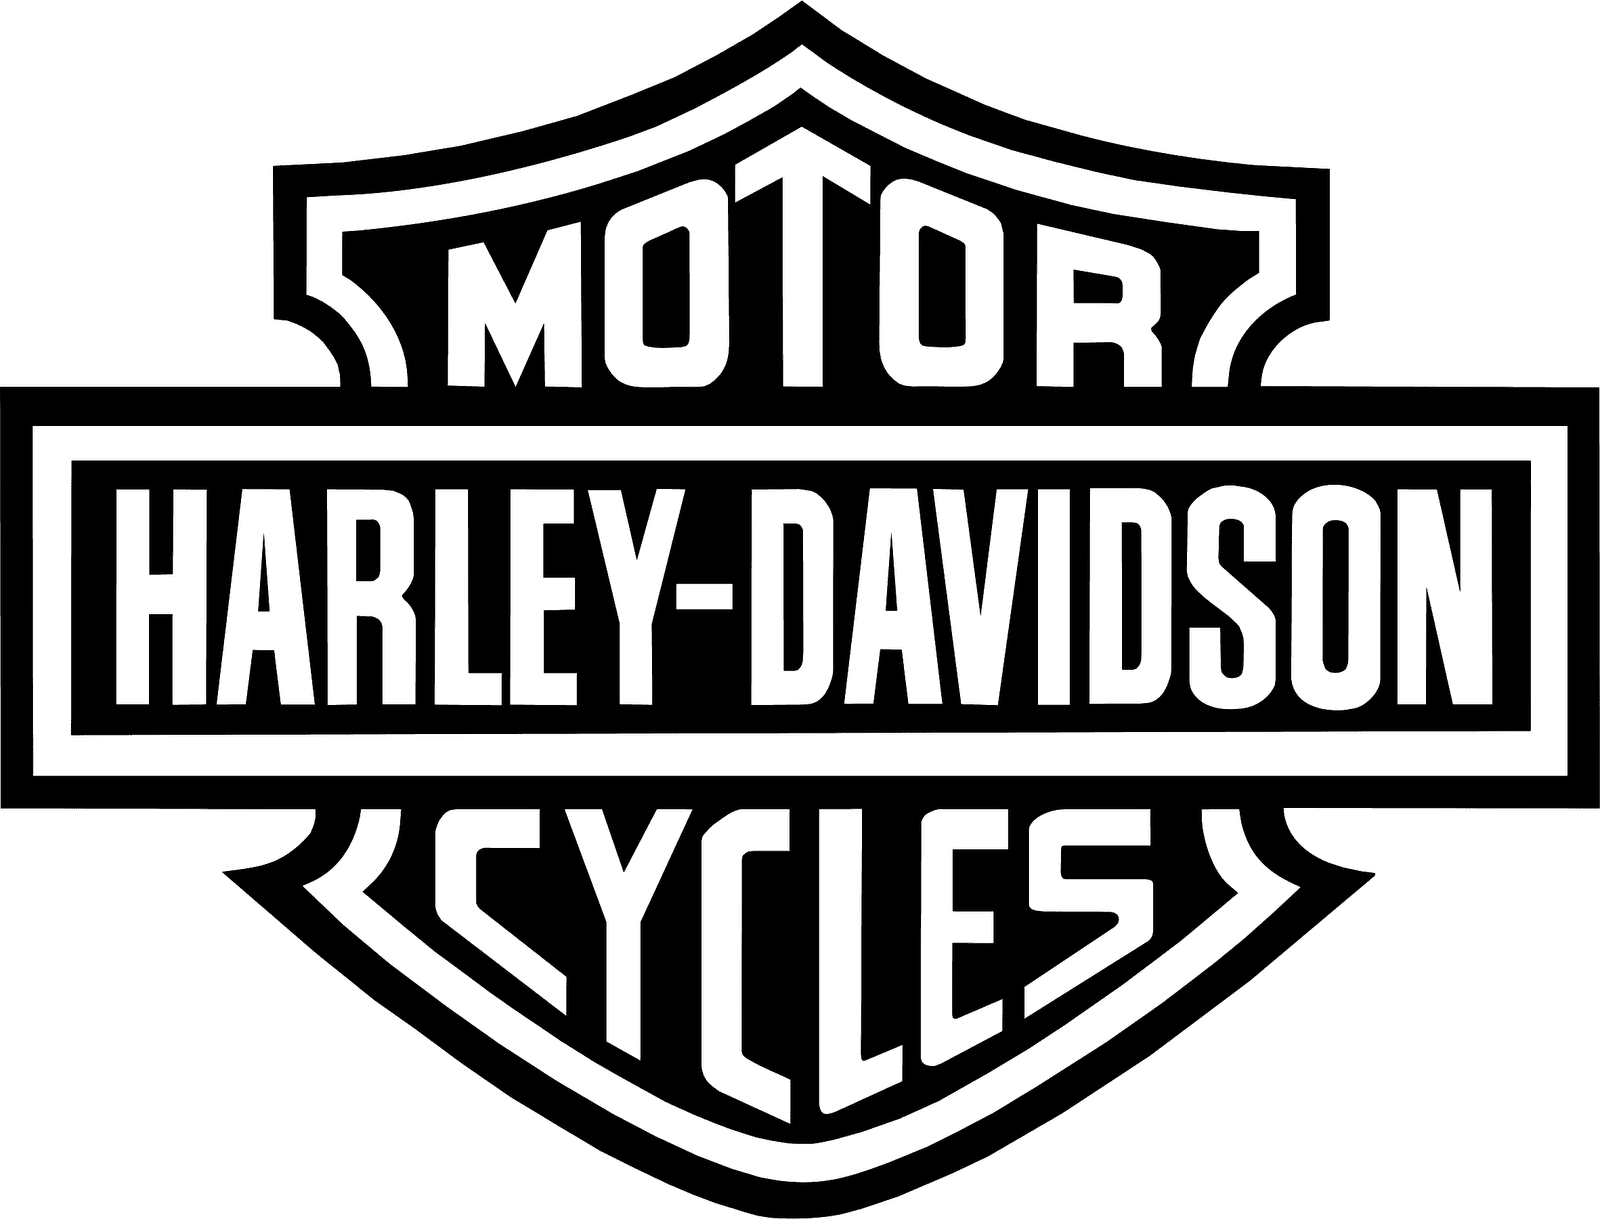 APEX Locksmith, Apex Denver Locksmith, Denver Locksmith, Harley Davidson Motorcycle Key Replacement, Lost Harley Davidson Motorcycle Keys